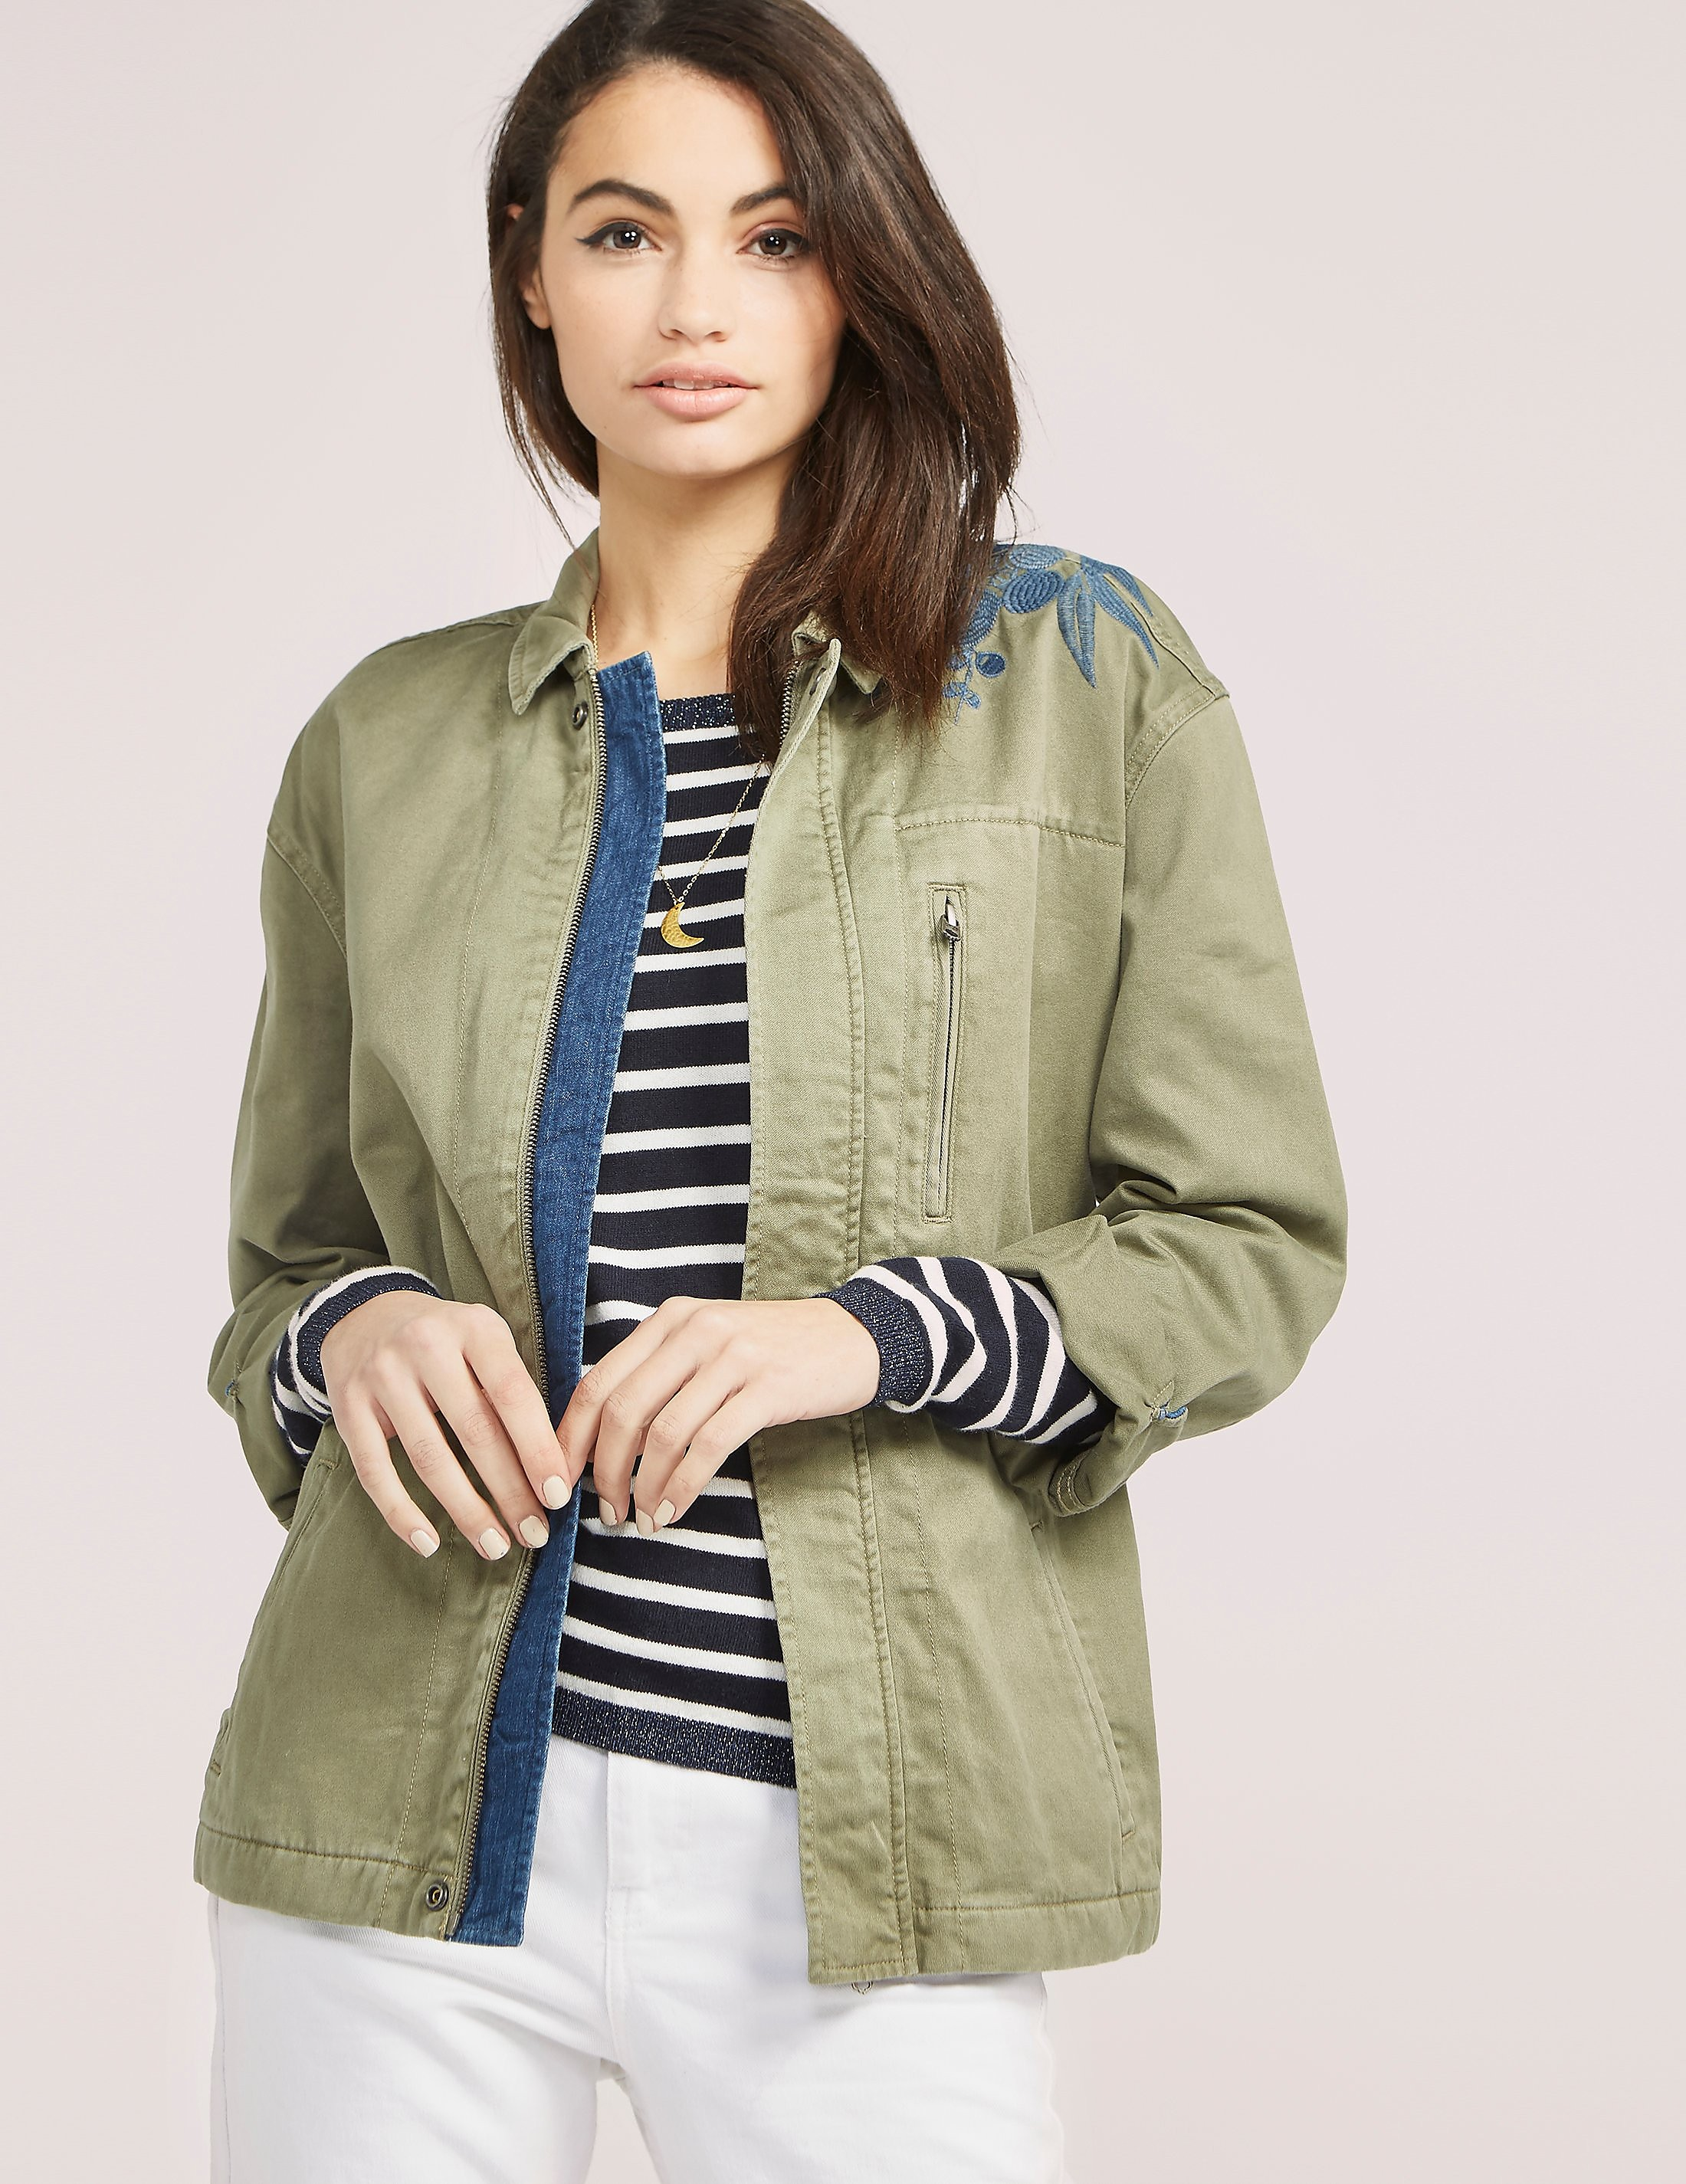 Maison Scotch Embroidered Army Jacket